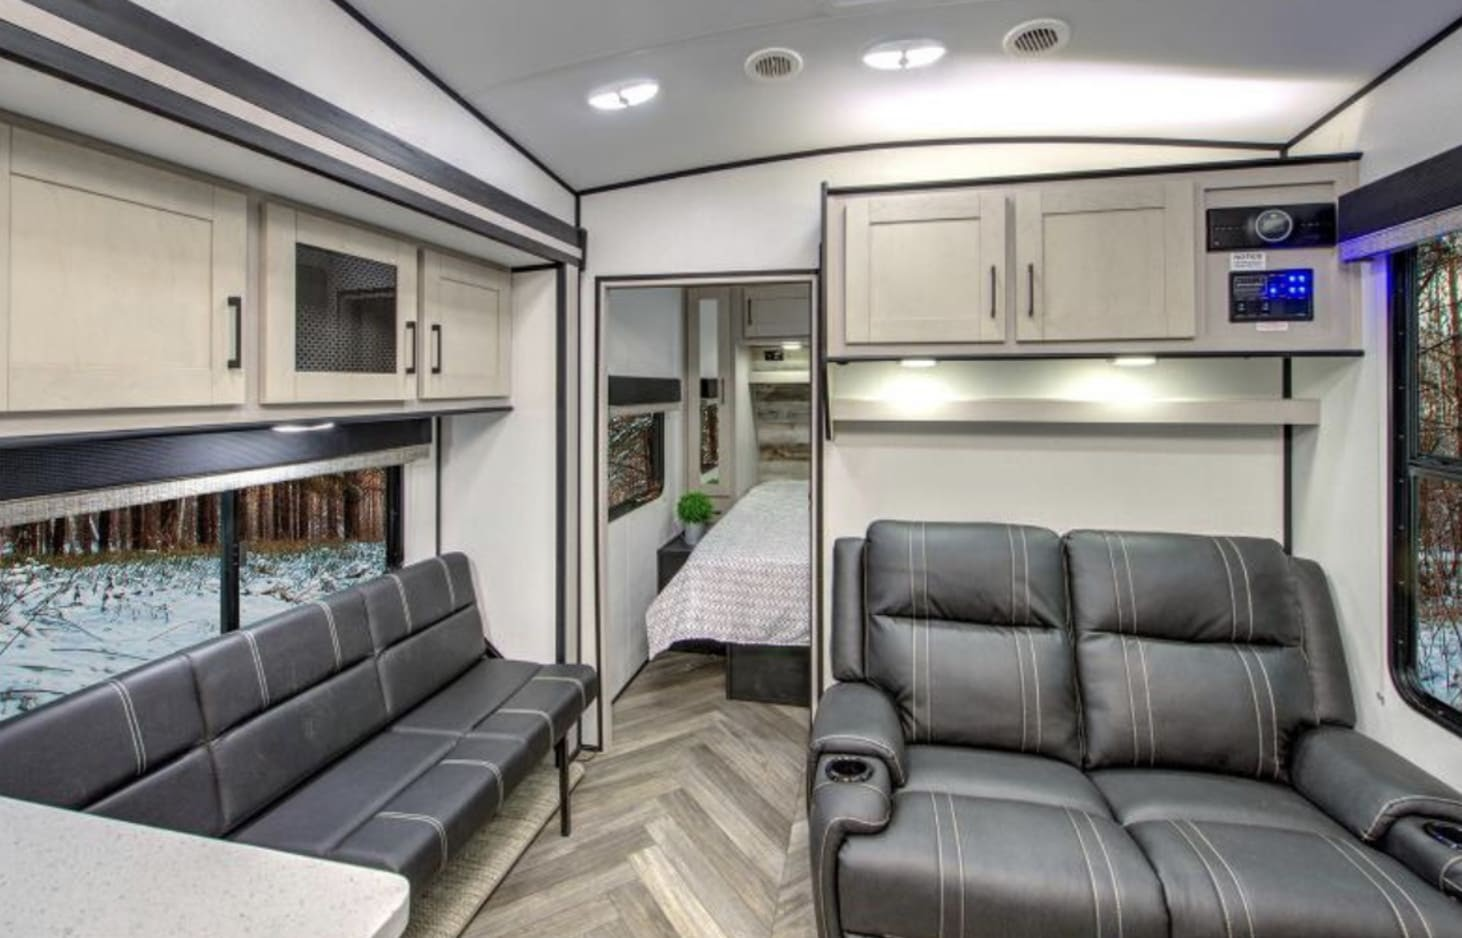 glamping in tx - rent this modern RV from rvShare